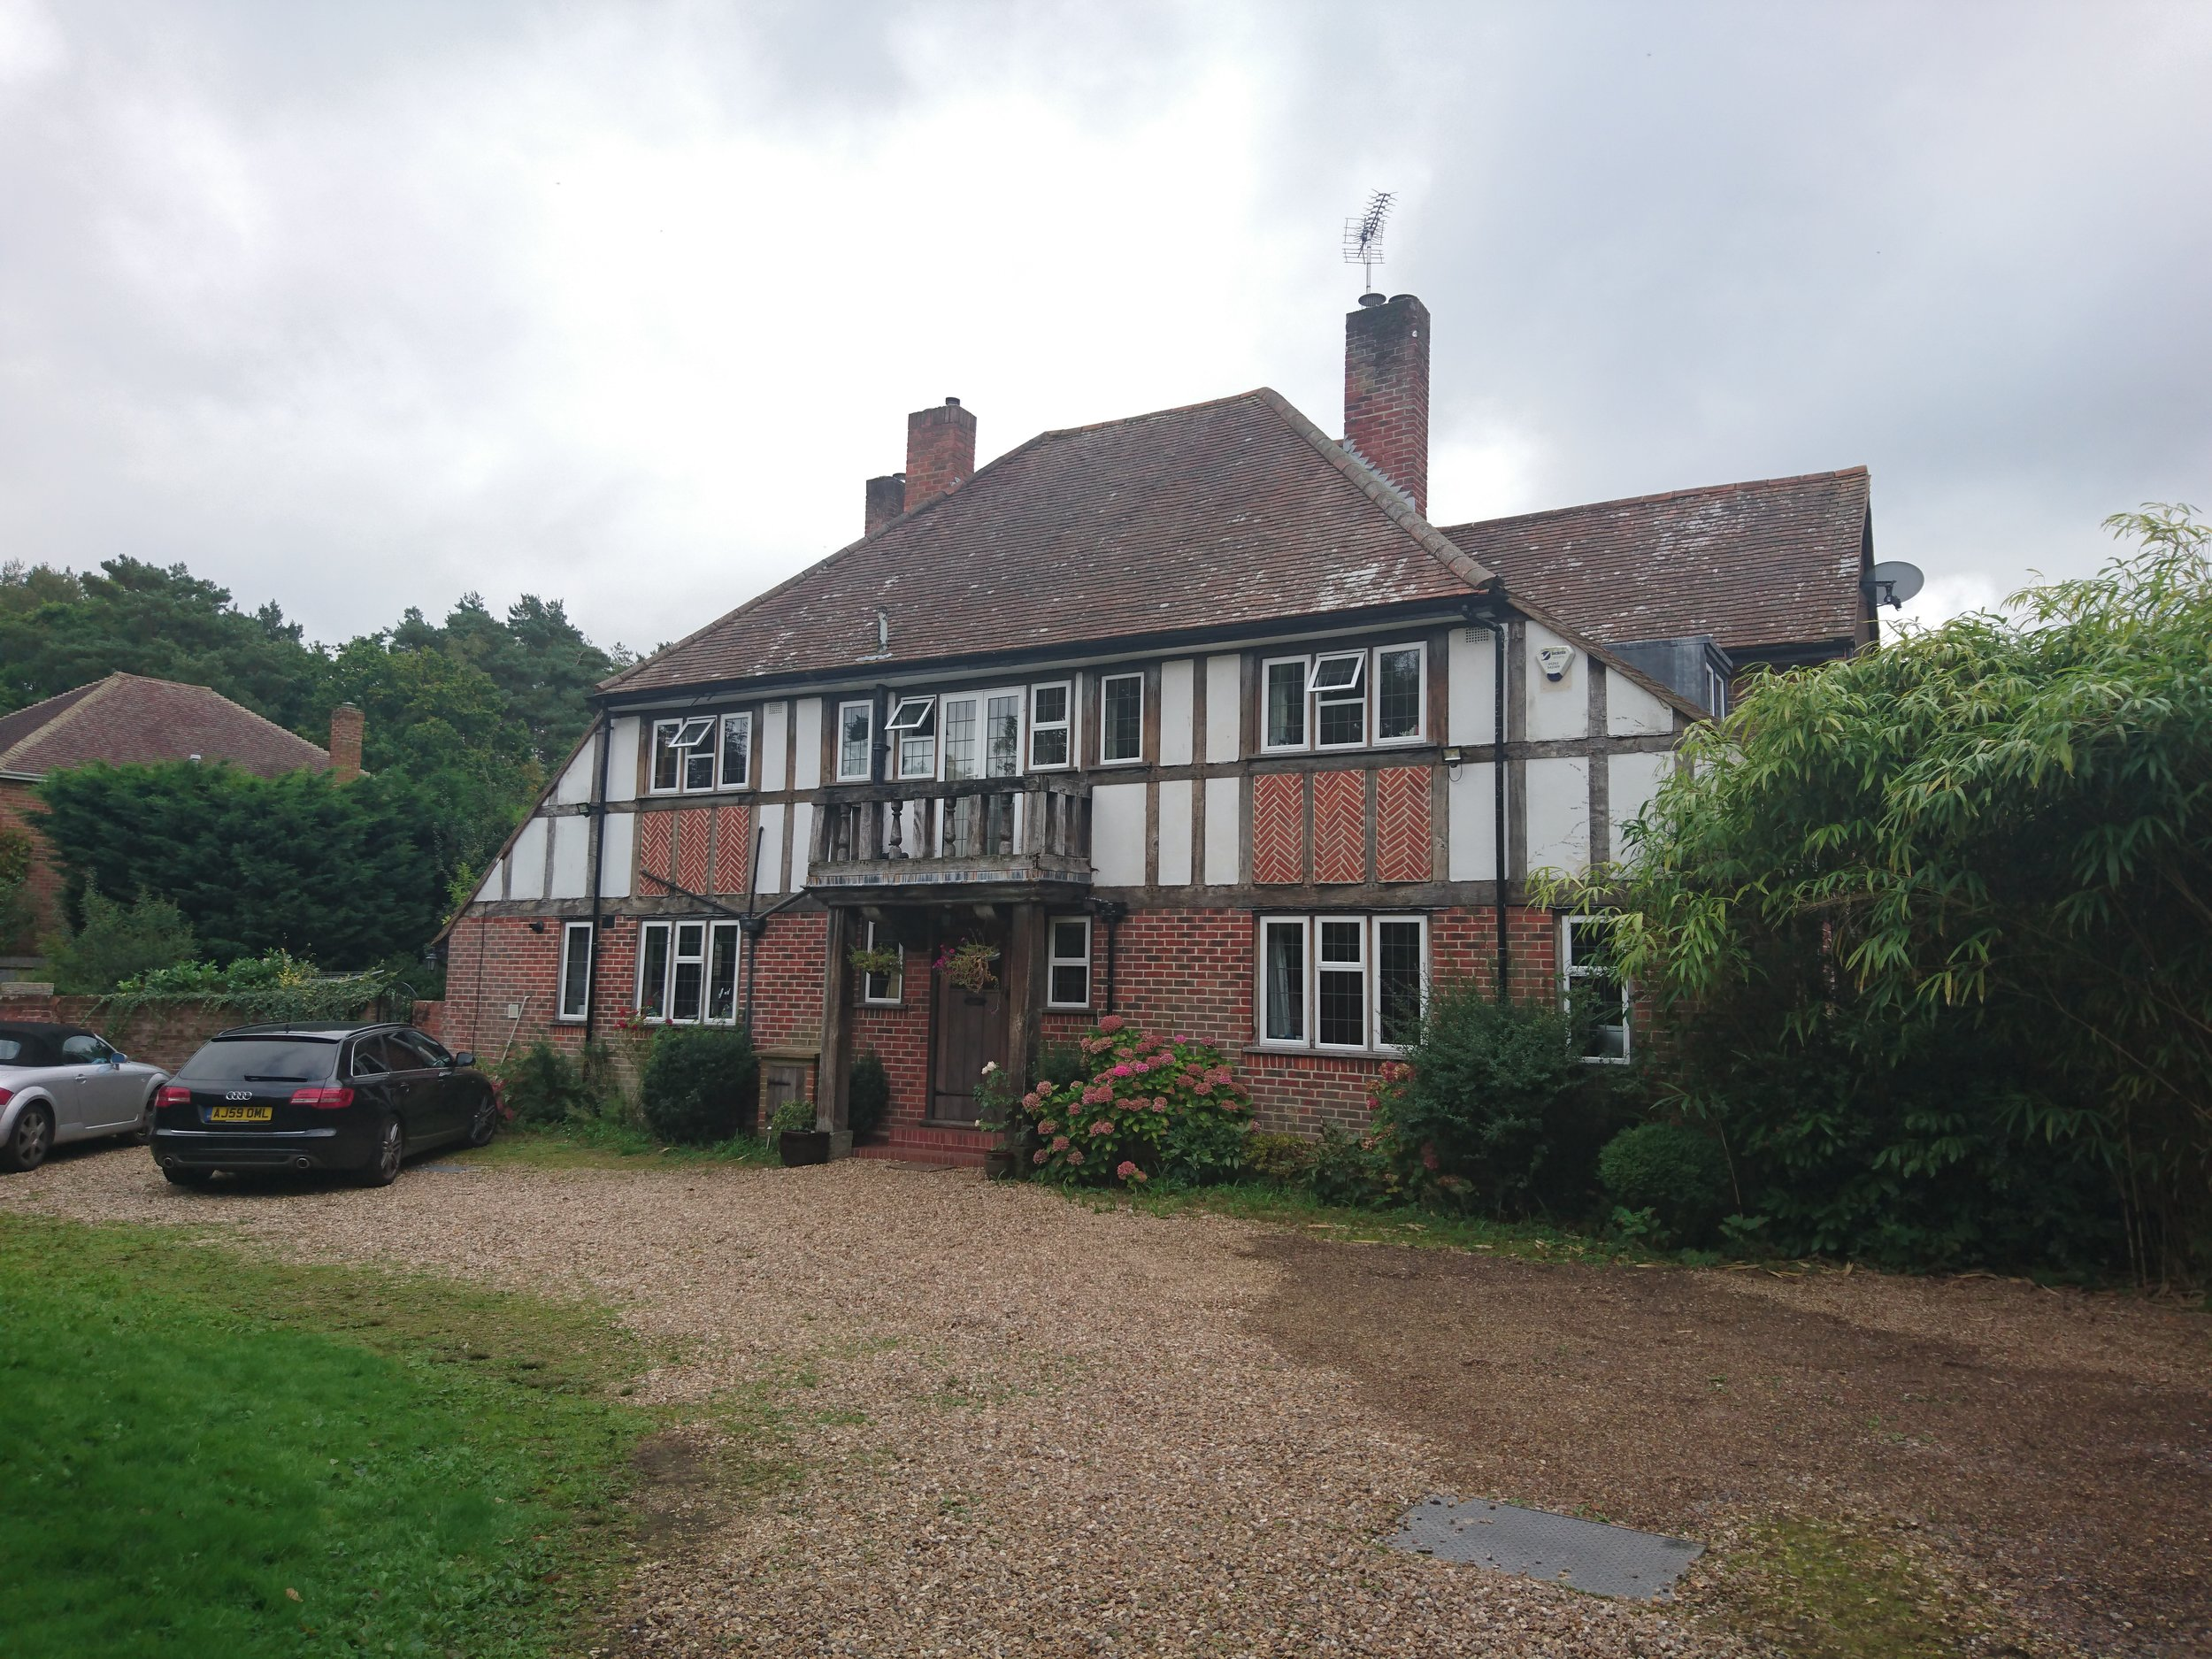 01 FAMILY HOME, HAMPSHIRE, UK.JPG